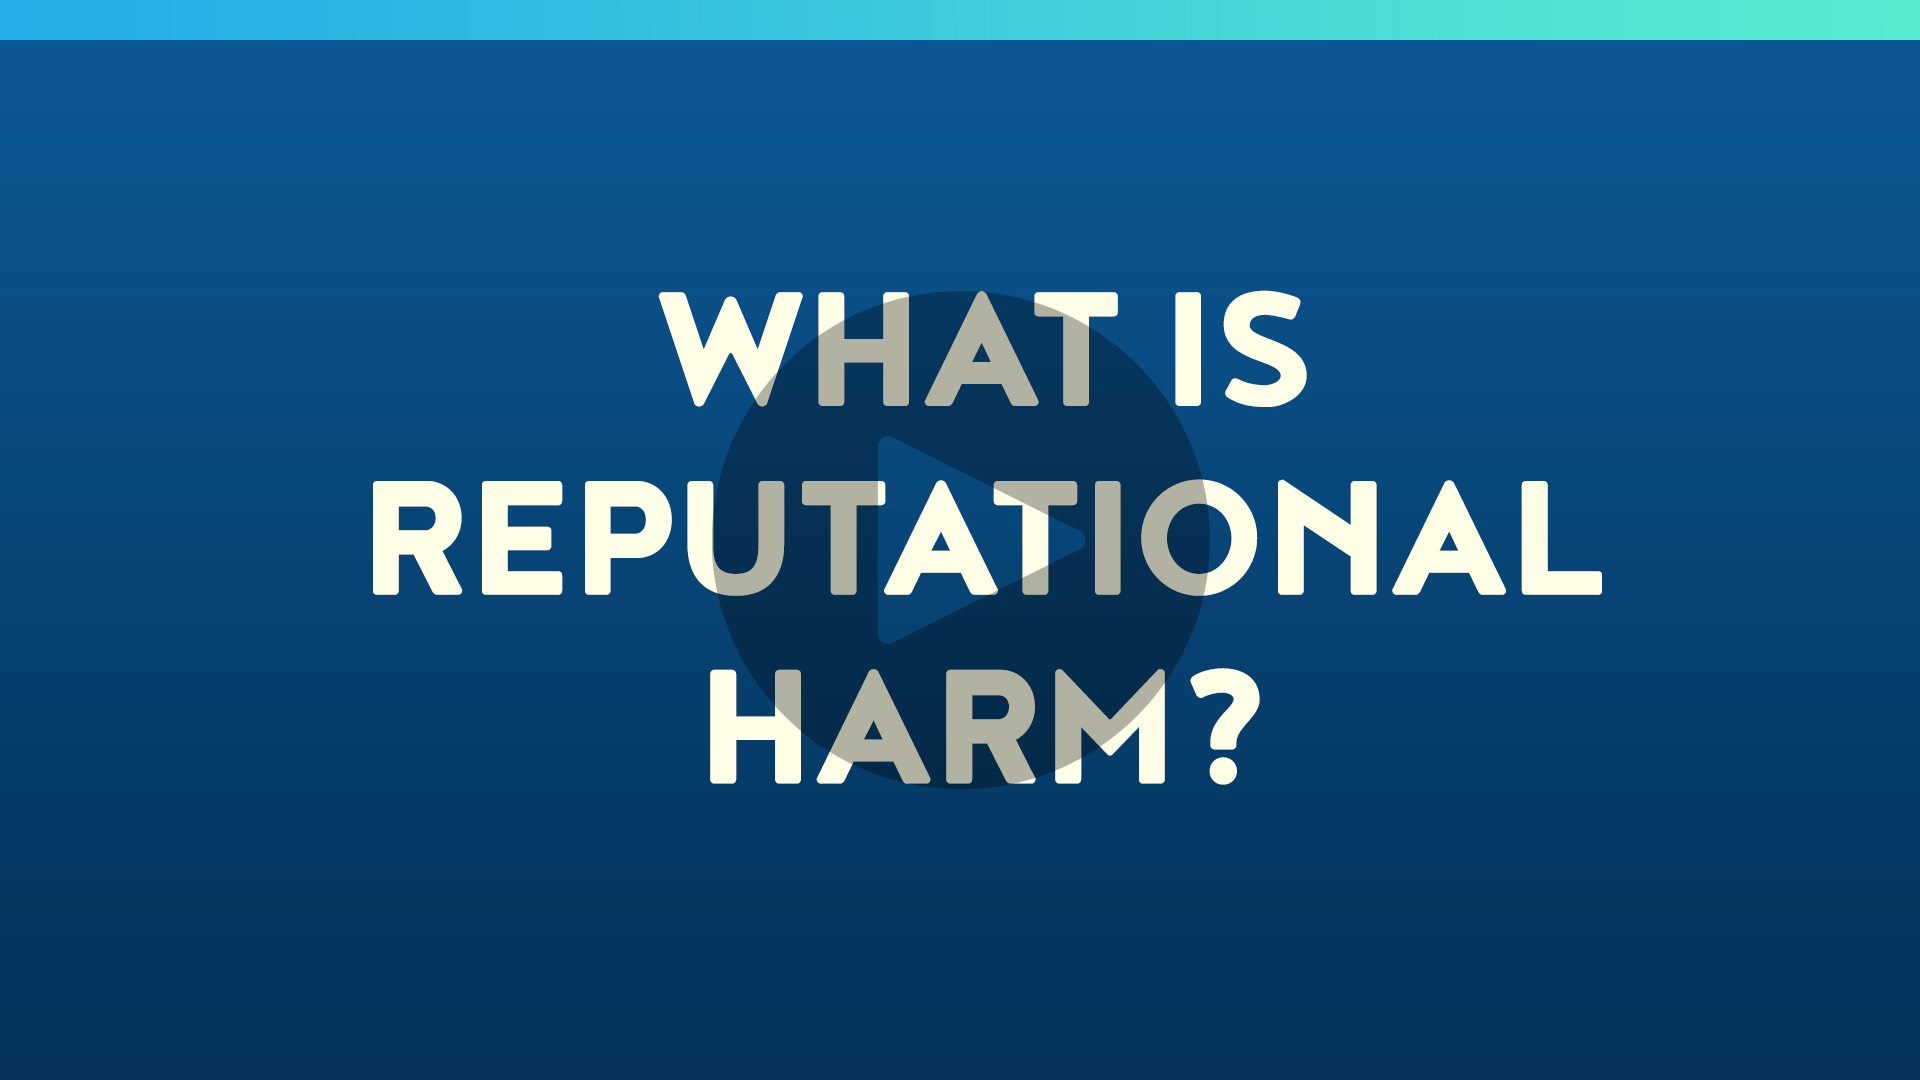 What is Reputational Harm?